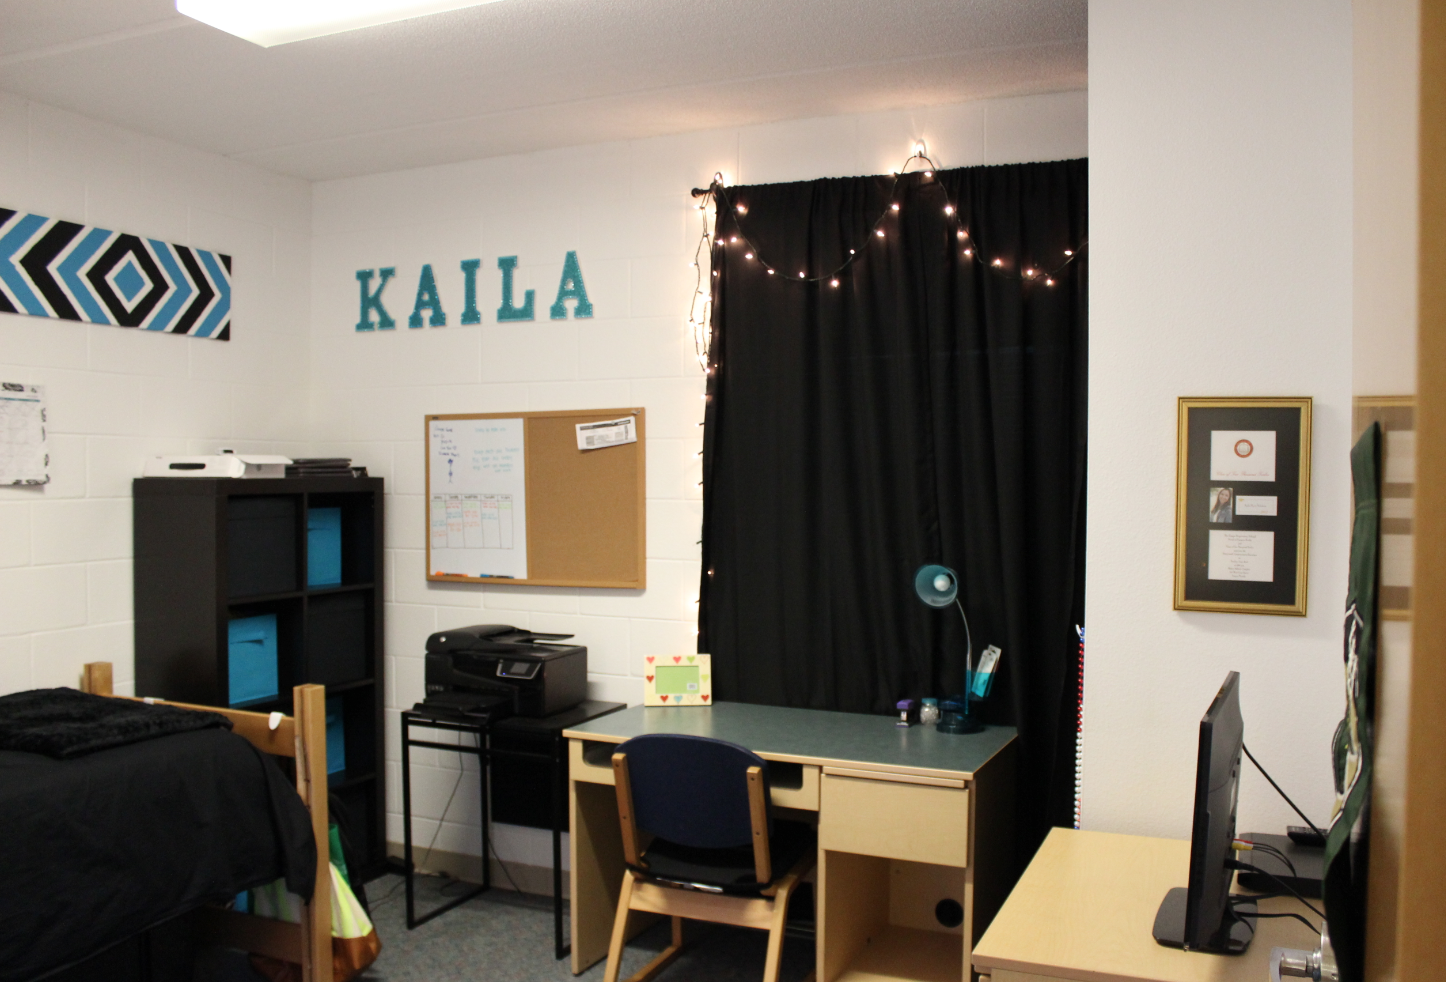 Mark Your Space Literally By Spelling Your Name With Colorful Letters On Your Wall Like This Usf Stu Dorm Room Inspiration Dorm Inspiration Room Inspiration